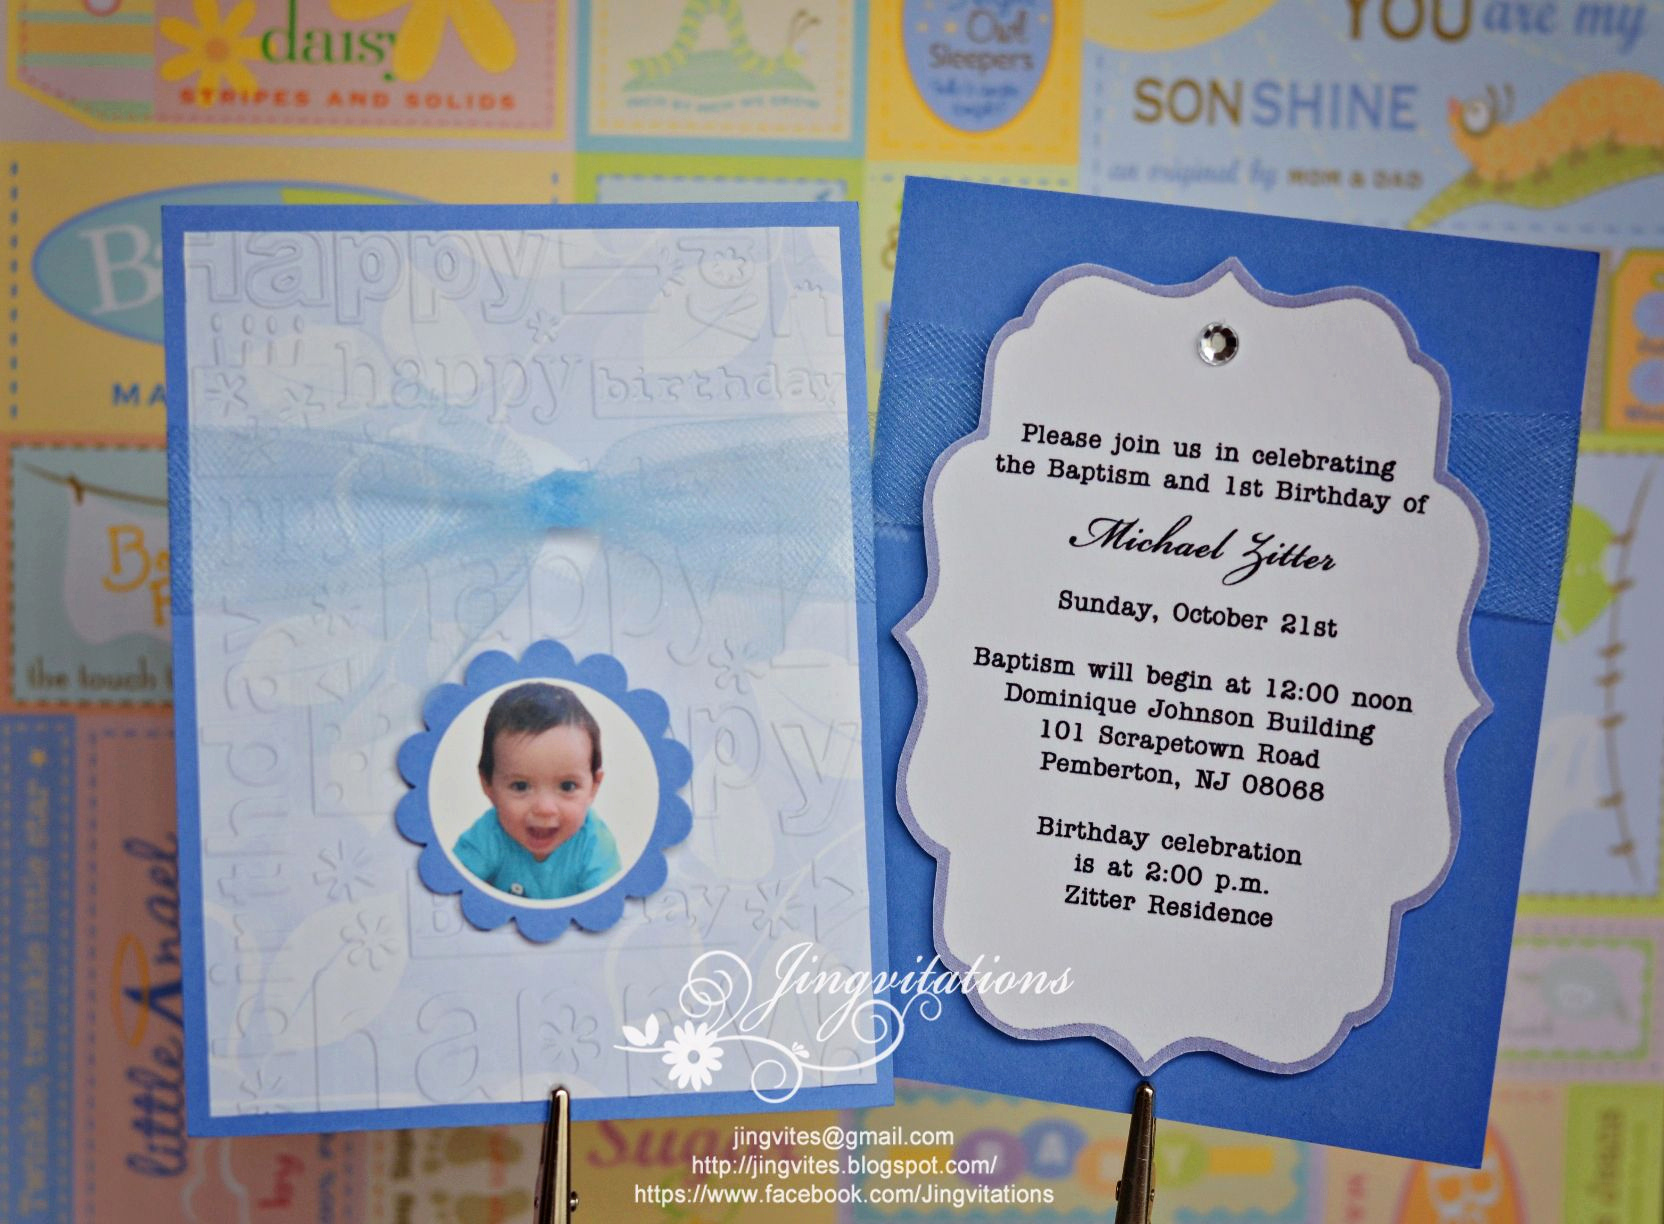 1st Birthday Invitation Ideas Beautiful 1st Birthday and Christening Baptism Invitation Sample